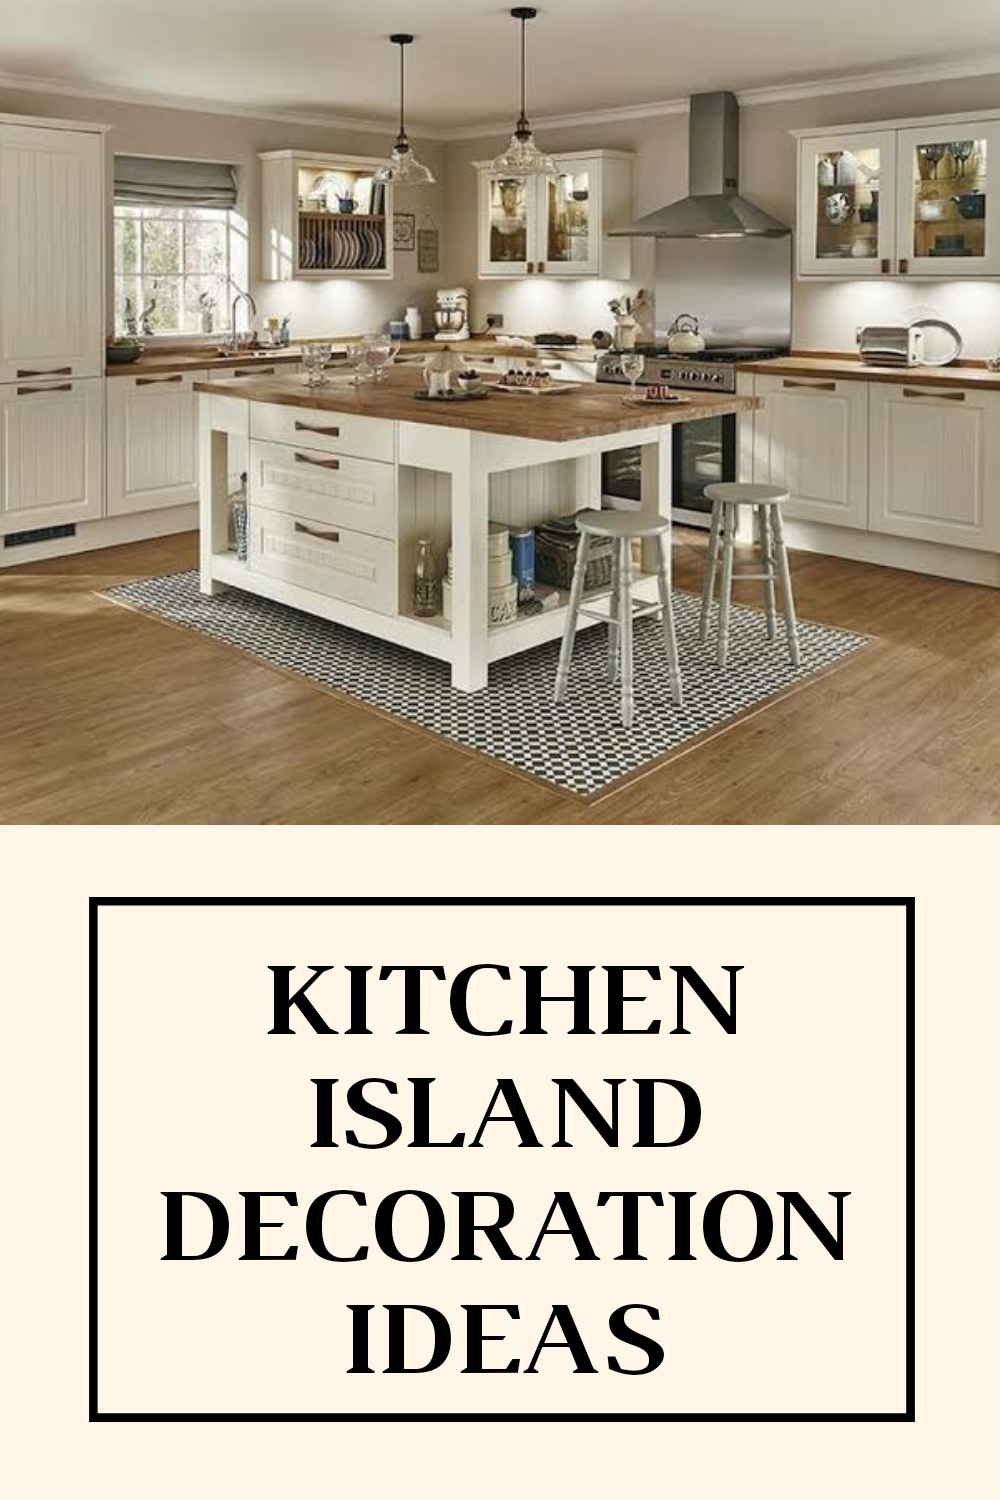 Tips To Decorate Your Kitchen Island Decor Build